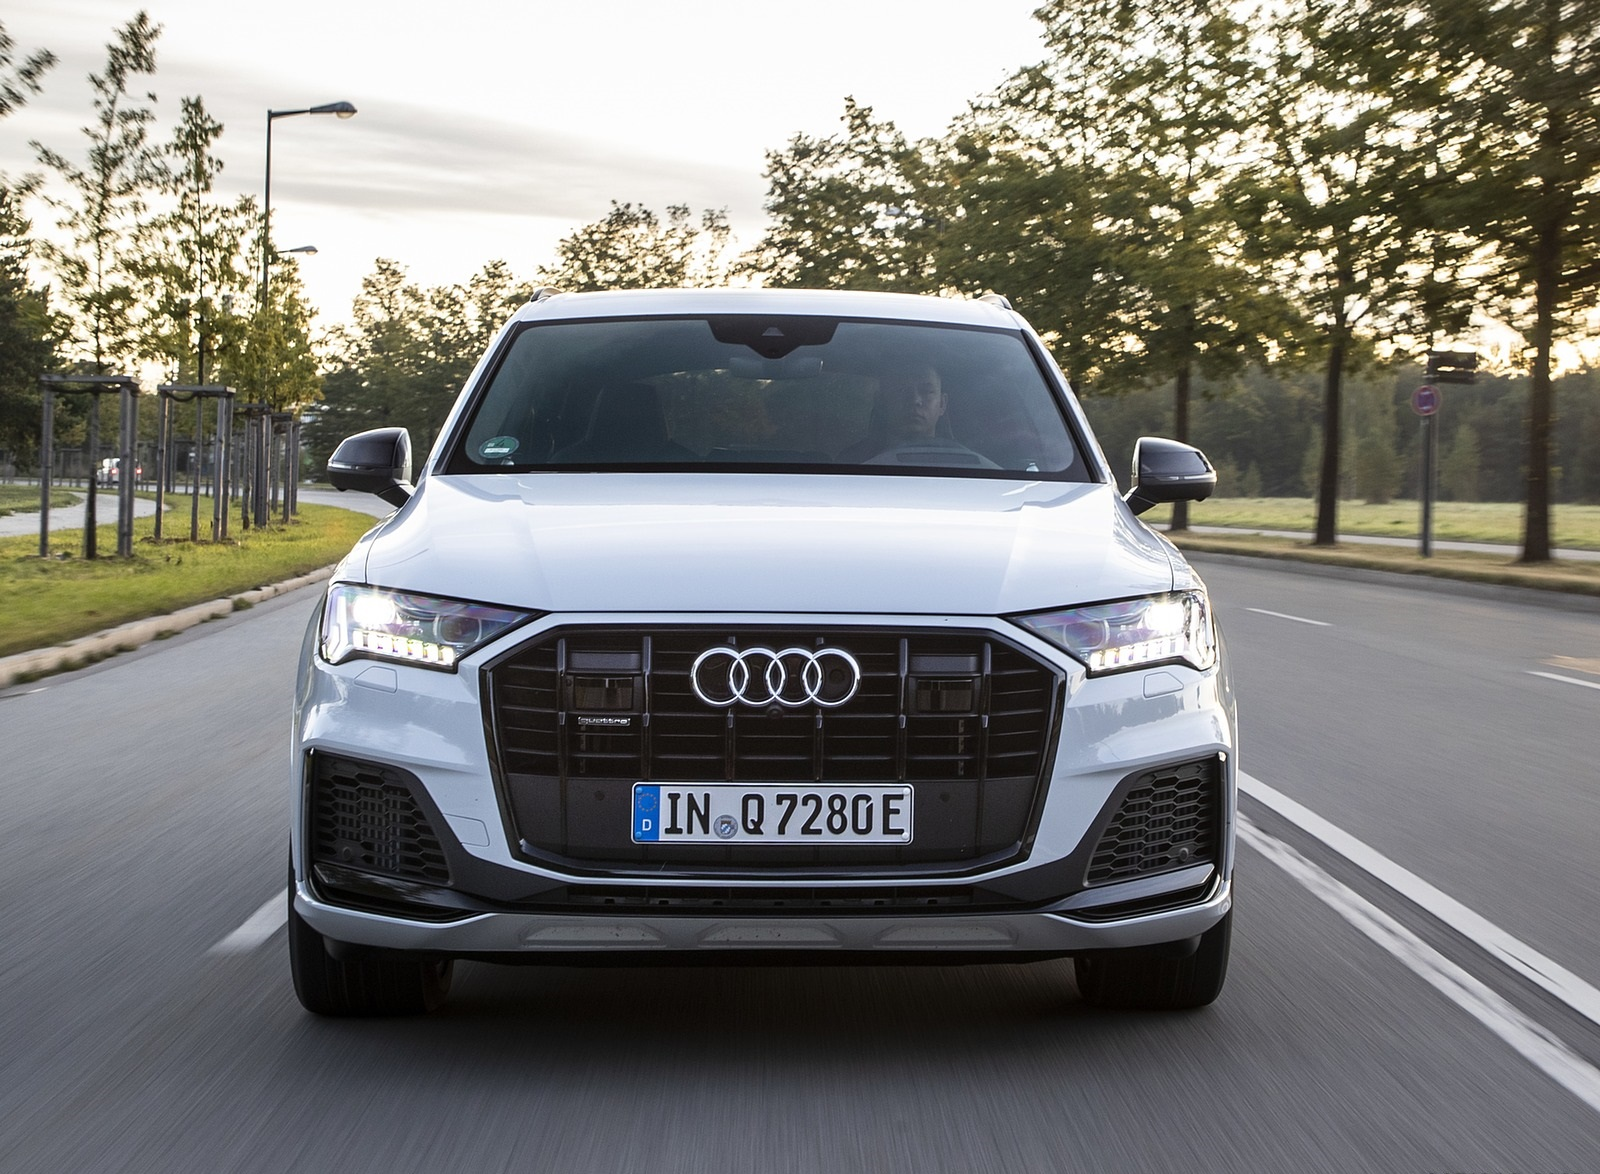 2020 Audi Q7 TFSI e quattro Plug-In Hybrid (Color: Glacier White) Front Wallpapers (2)